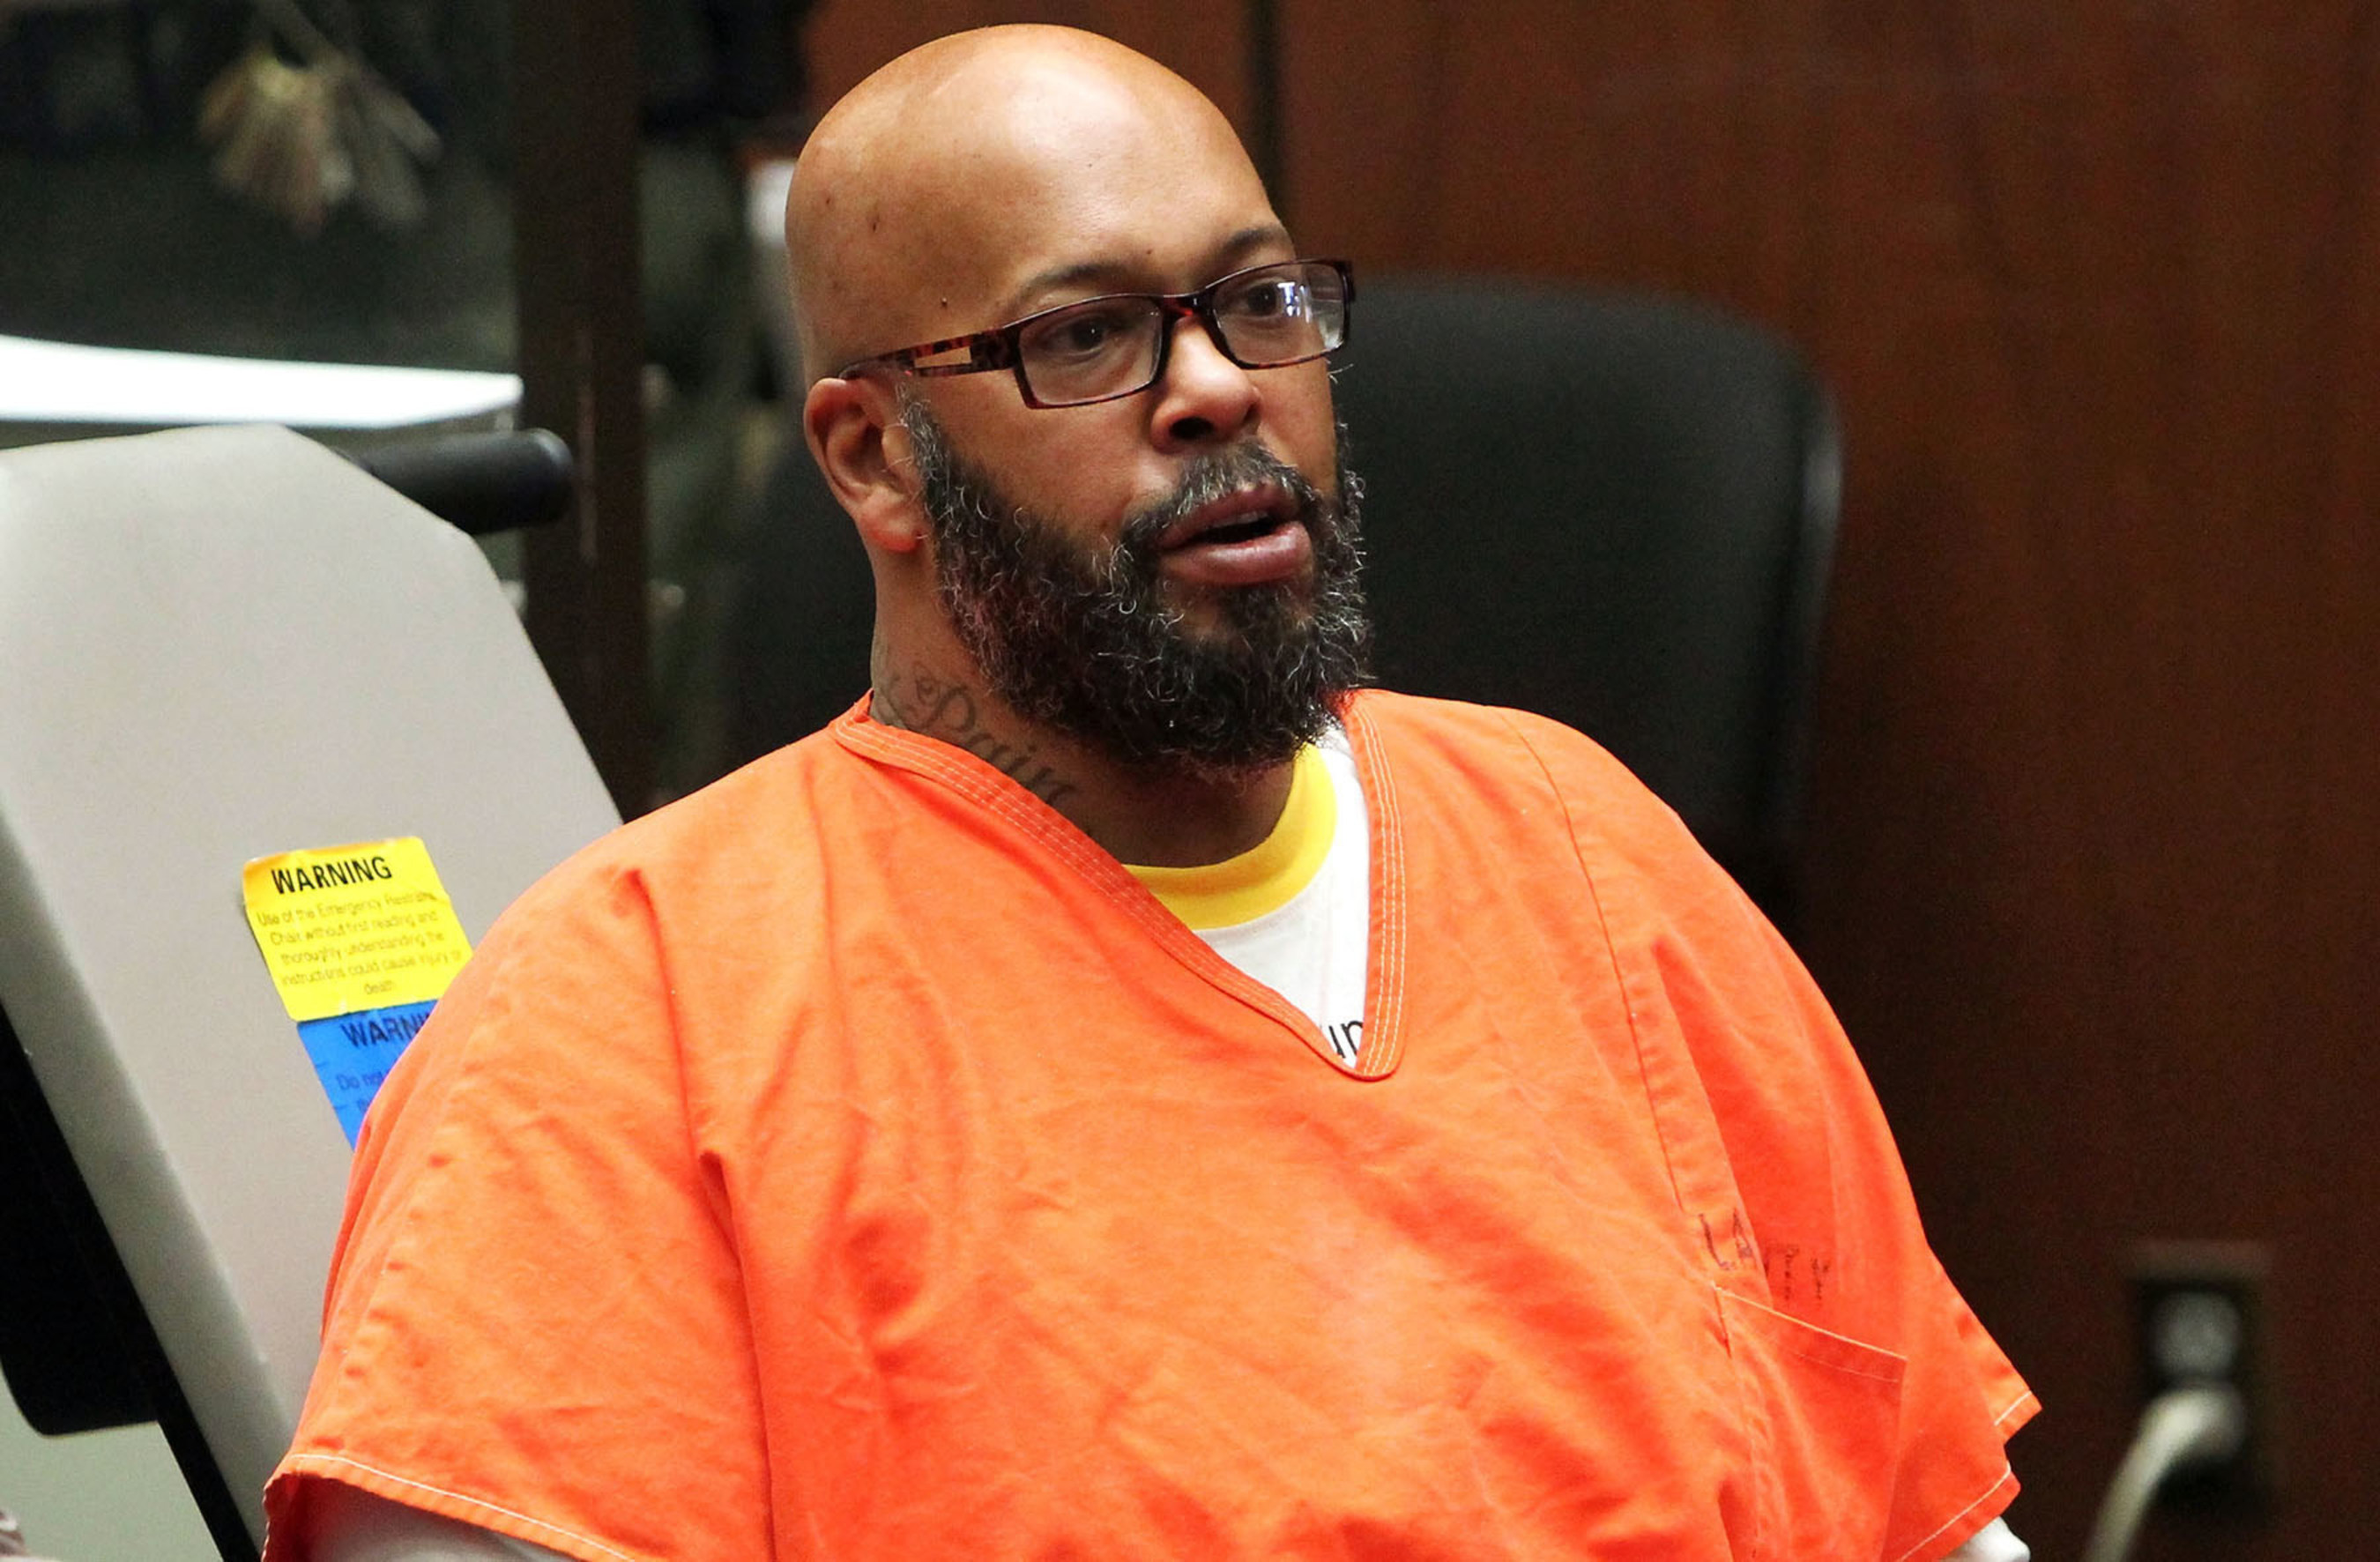 Suge Knight facing a pending Murder case involving an alleged hit-and-run incident in Compton, California.